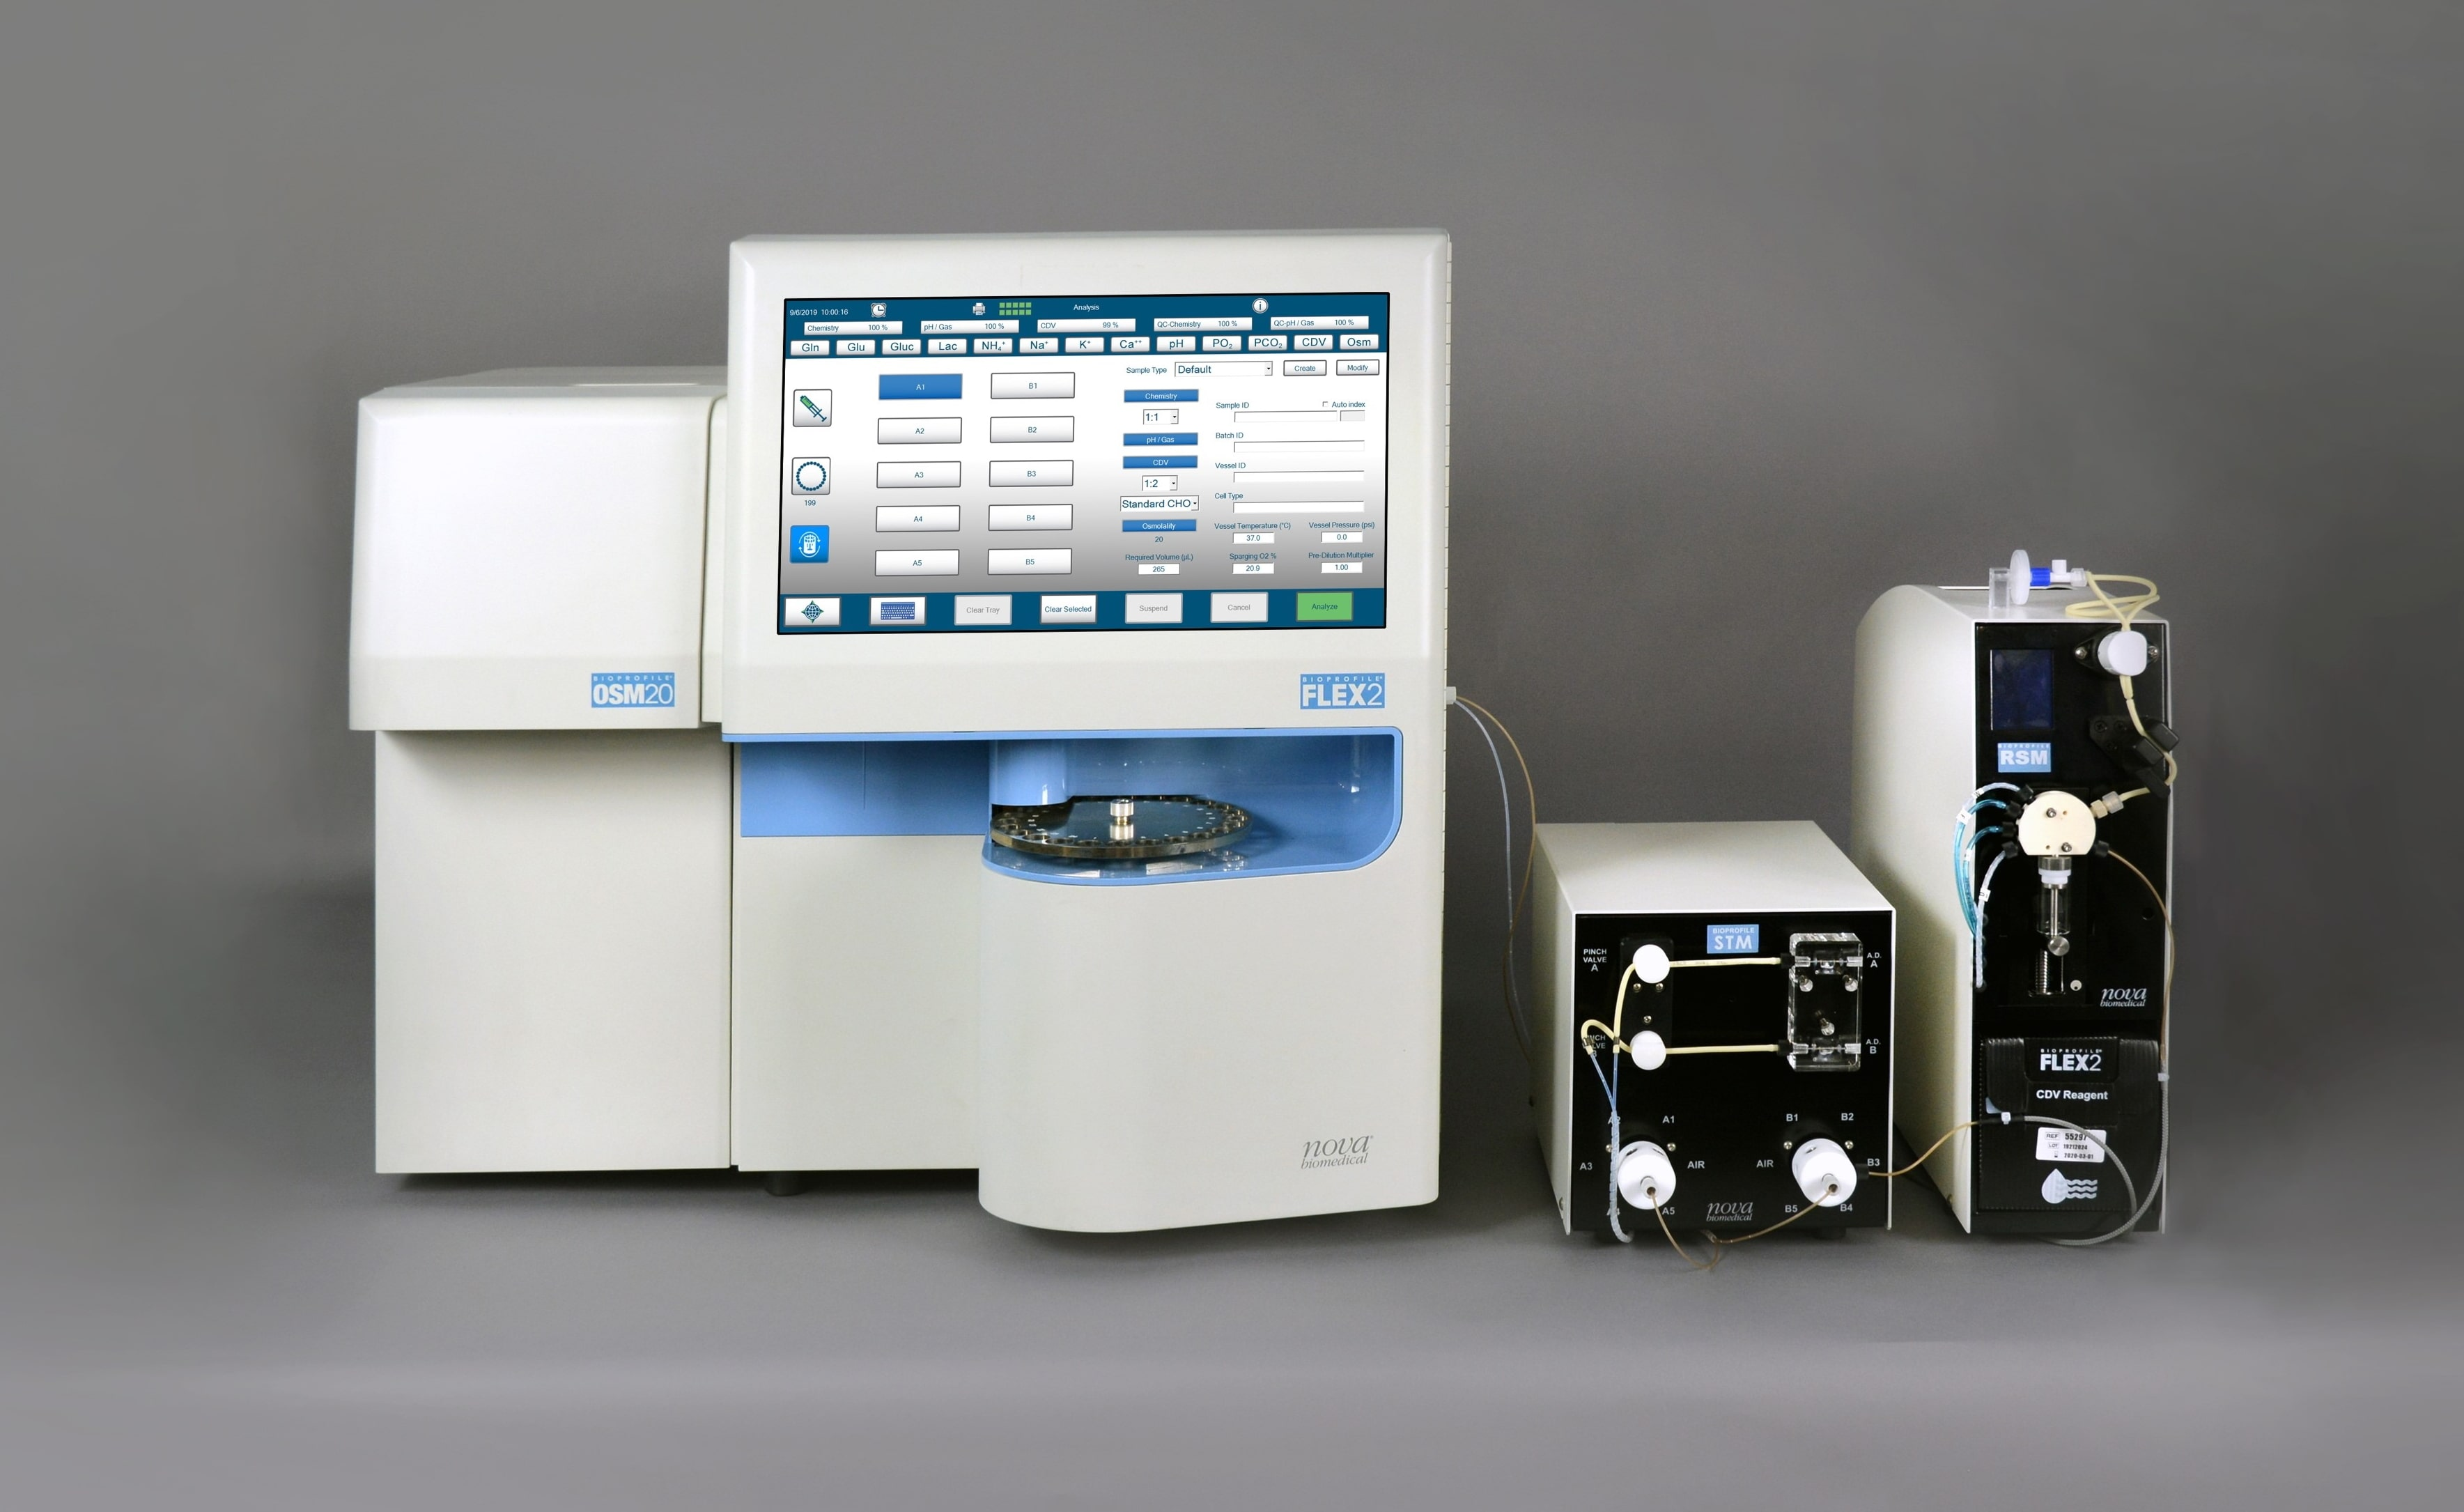 Image: BioProfile FLEX2 Cell Culture Analyzer (Photo courtesy of Nova Biomedical)